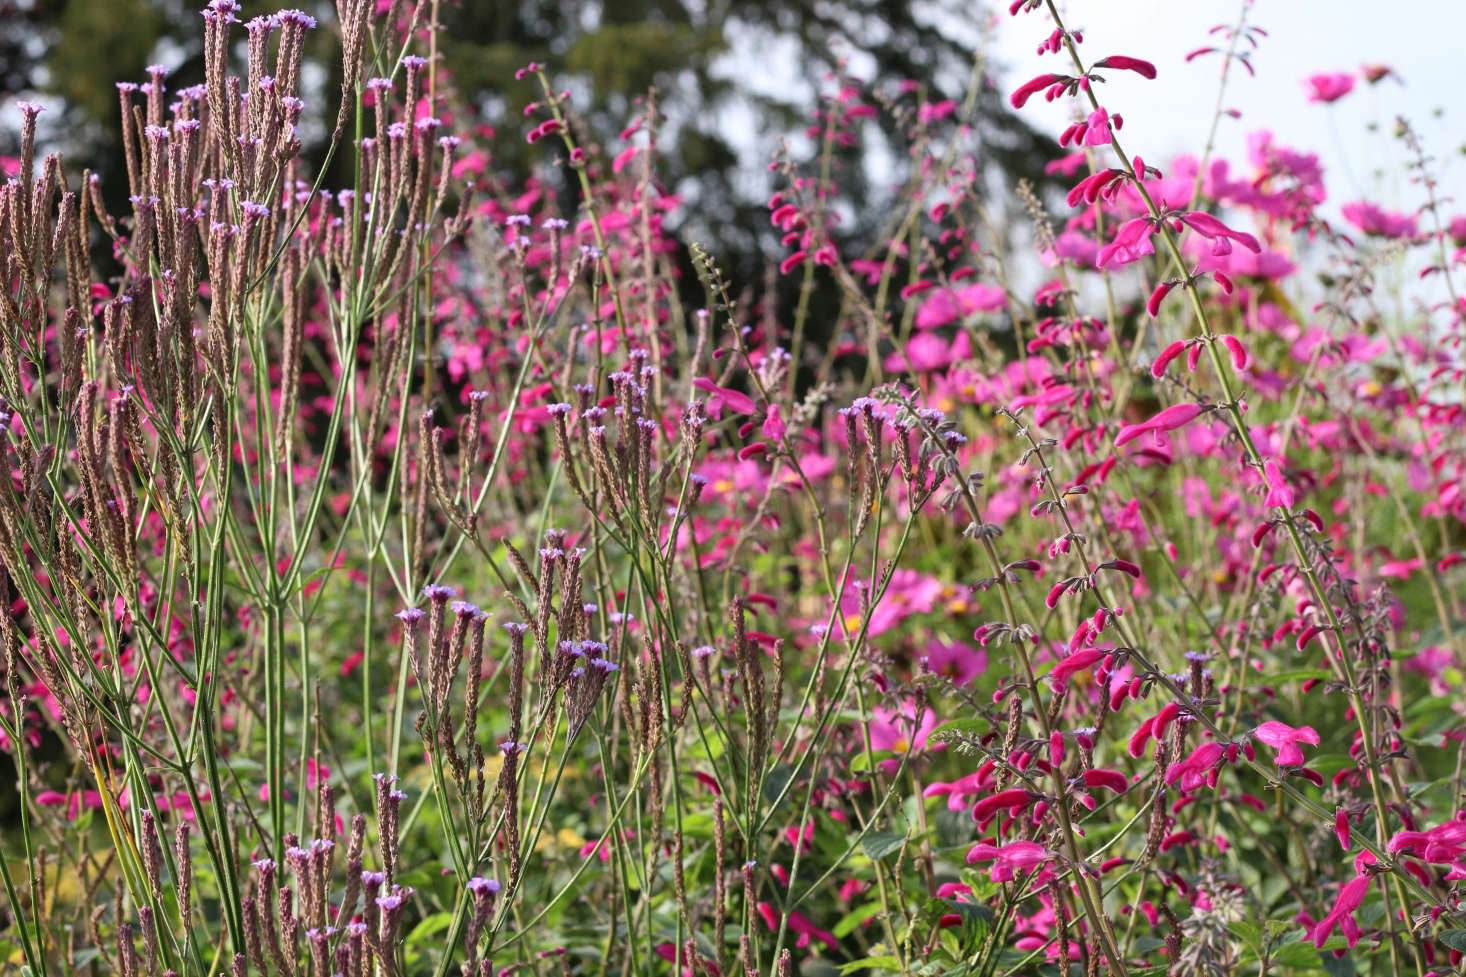 Tall and stately Salvia curviflora with Verbena macdougalii 'Lavender Spires' at Gravetye.